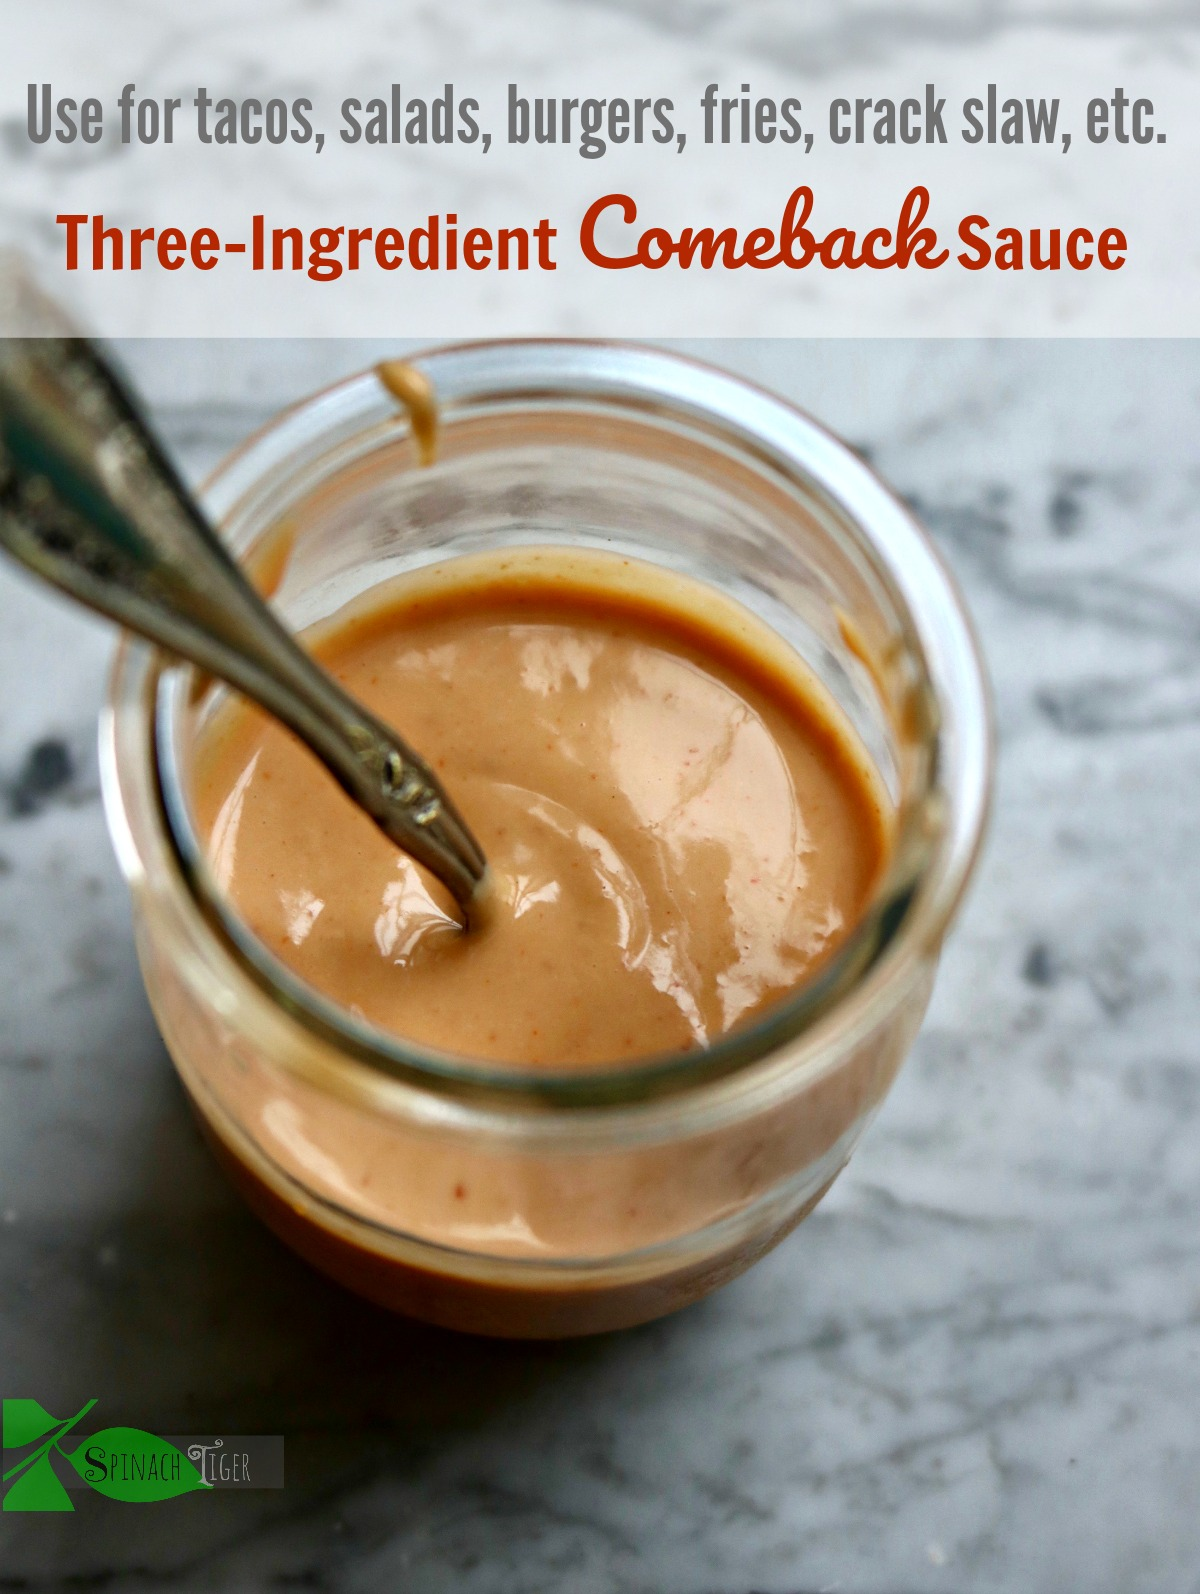 Comeback Sauce Recipe from Spinach Tiger